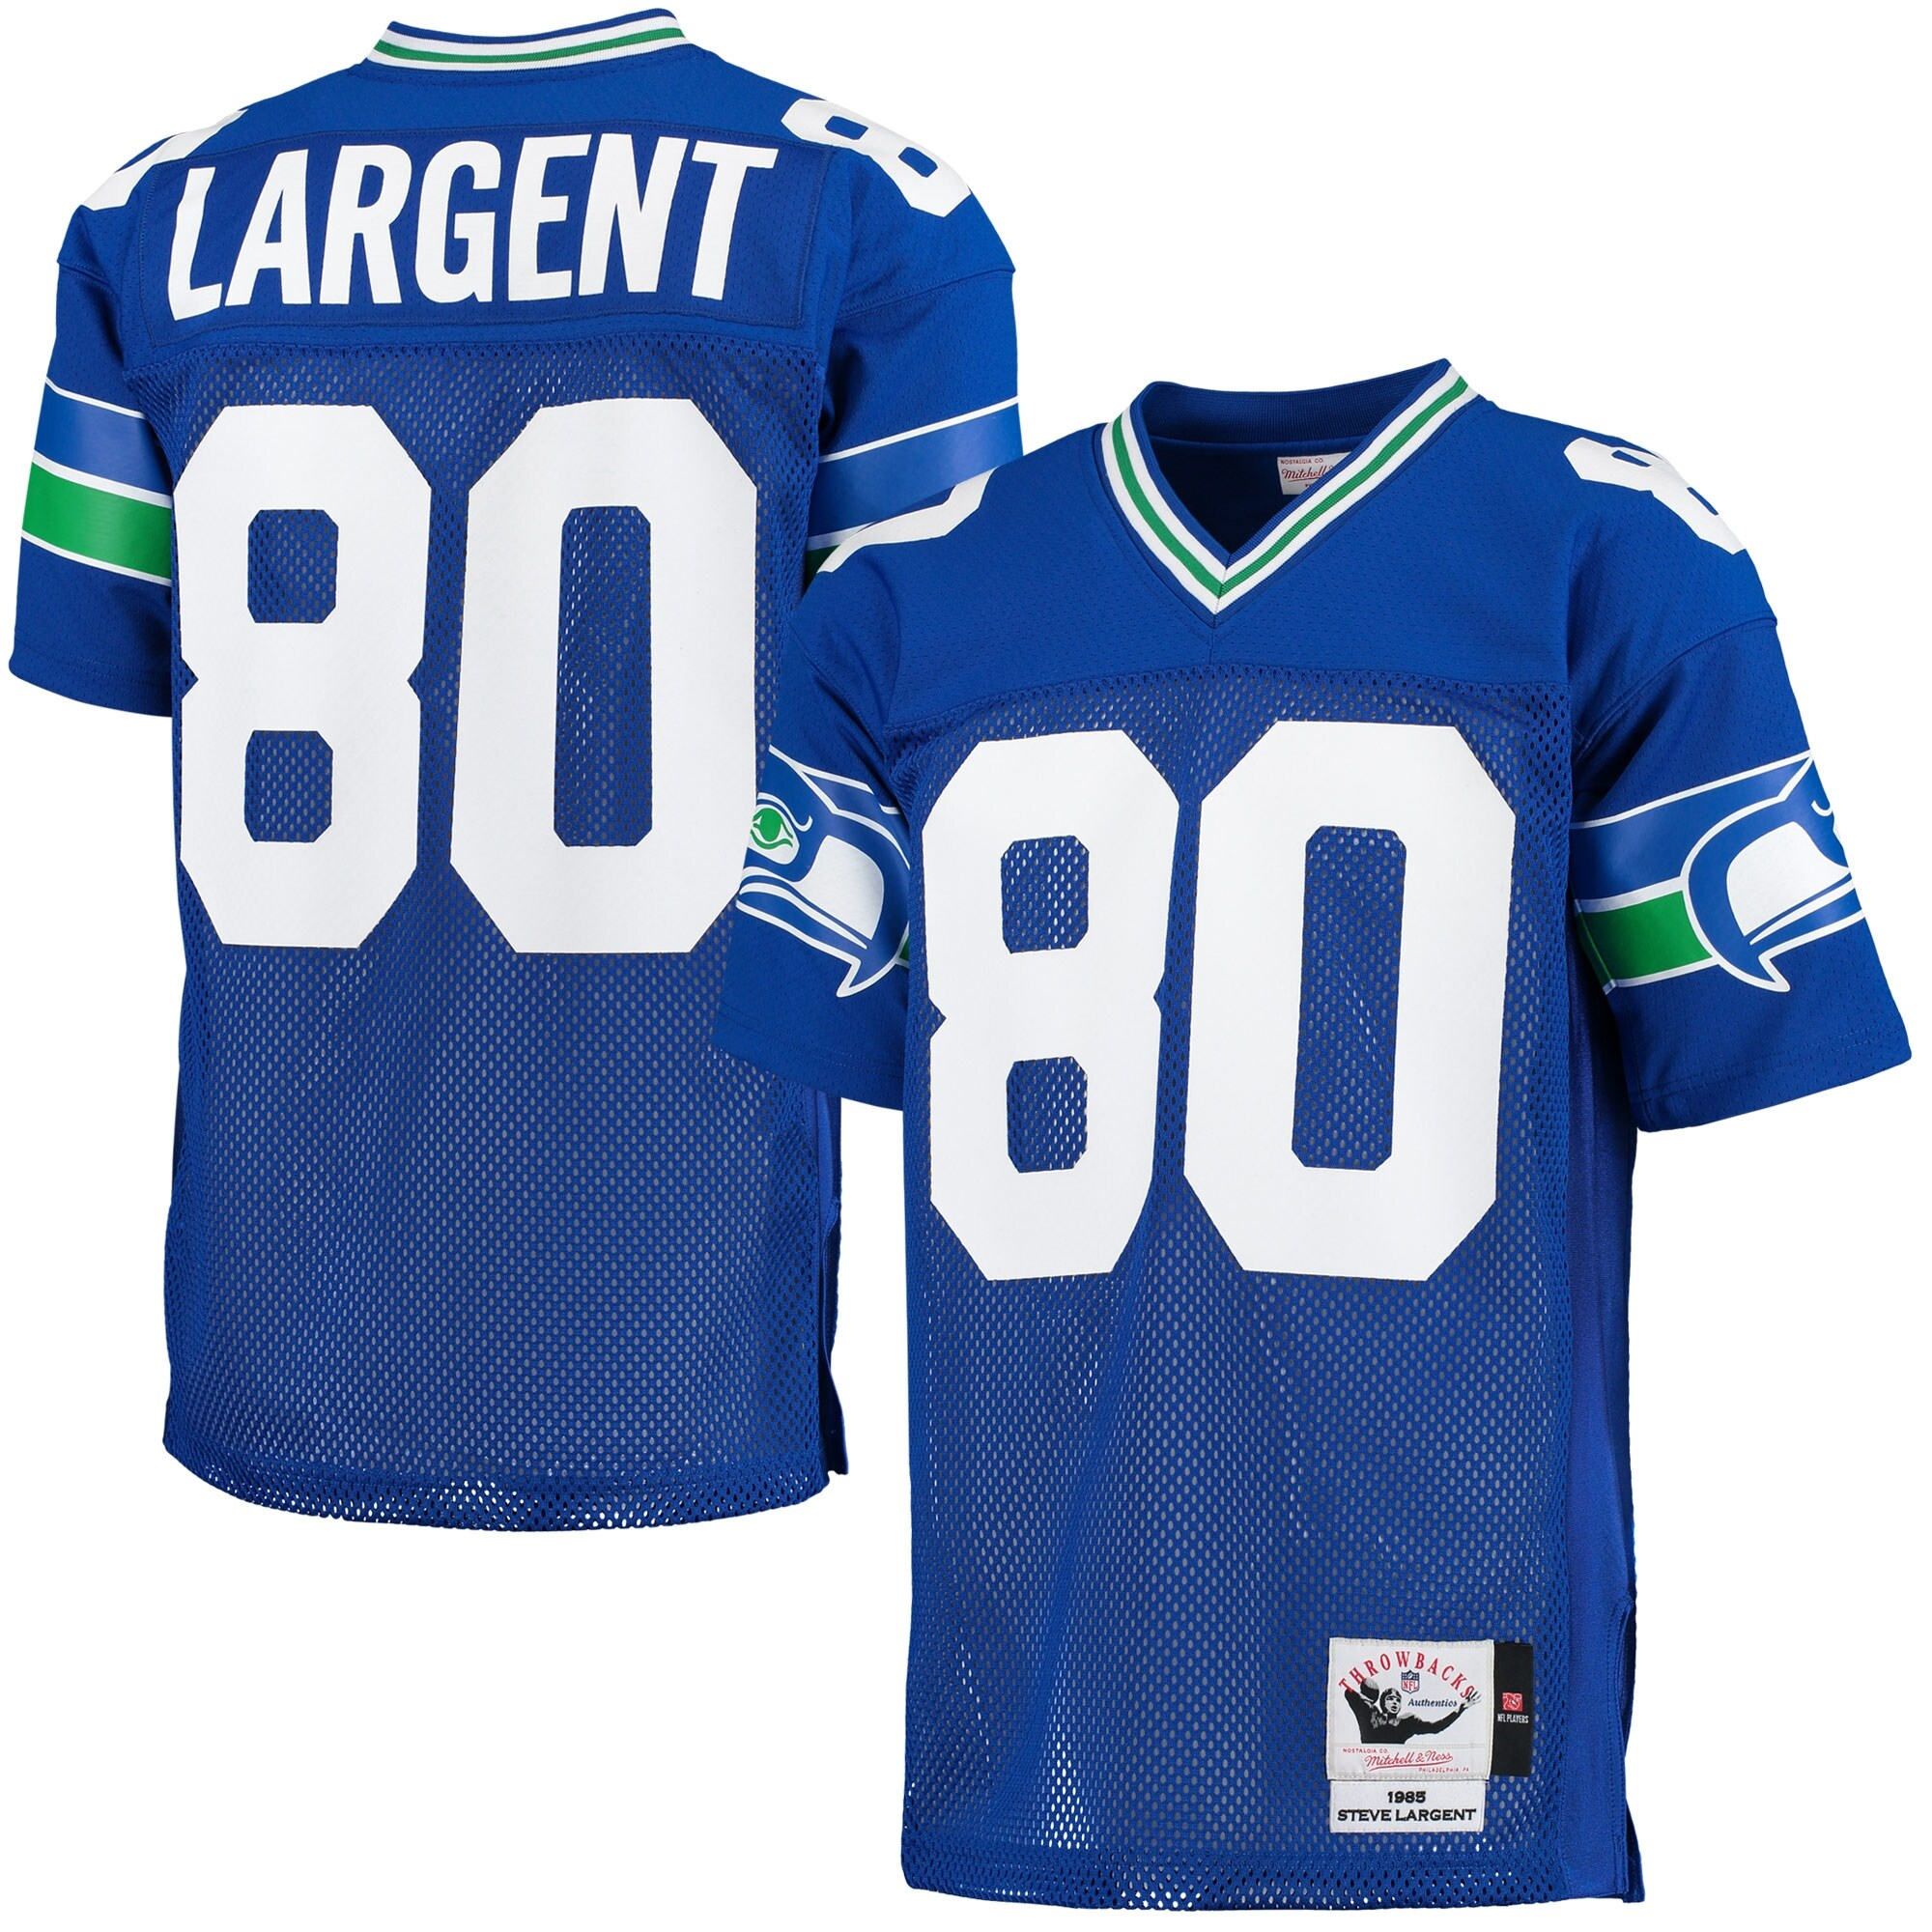 Steve Largent Seattle Seahawks Mitchell & Ness 1985 Throwback Authentic Jersey - Blue